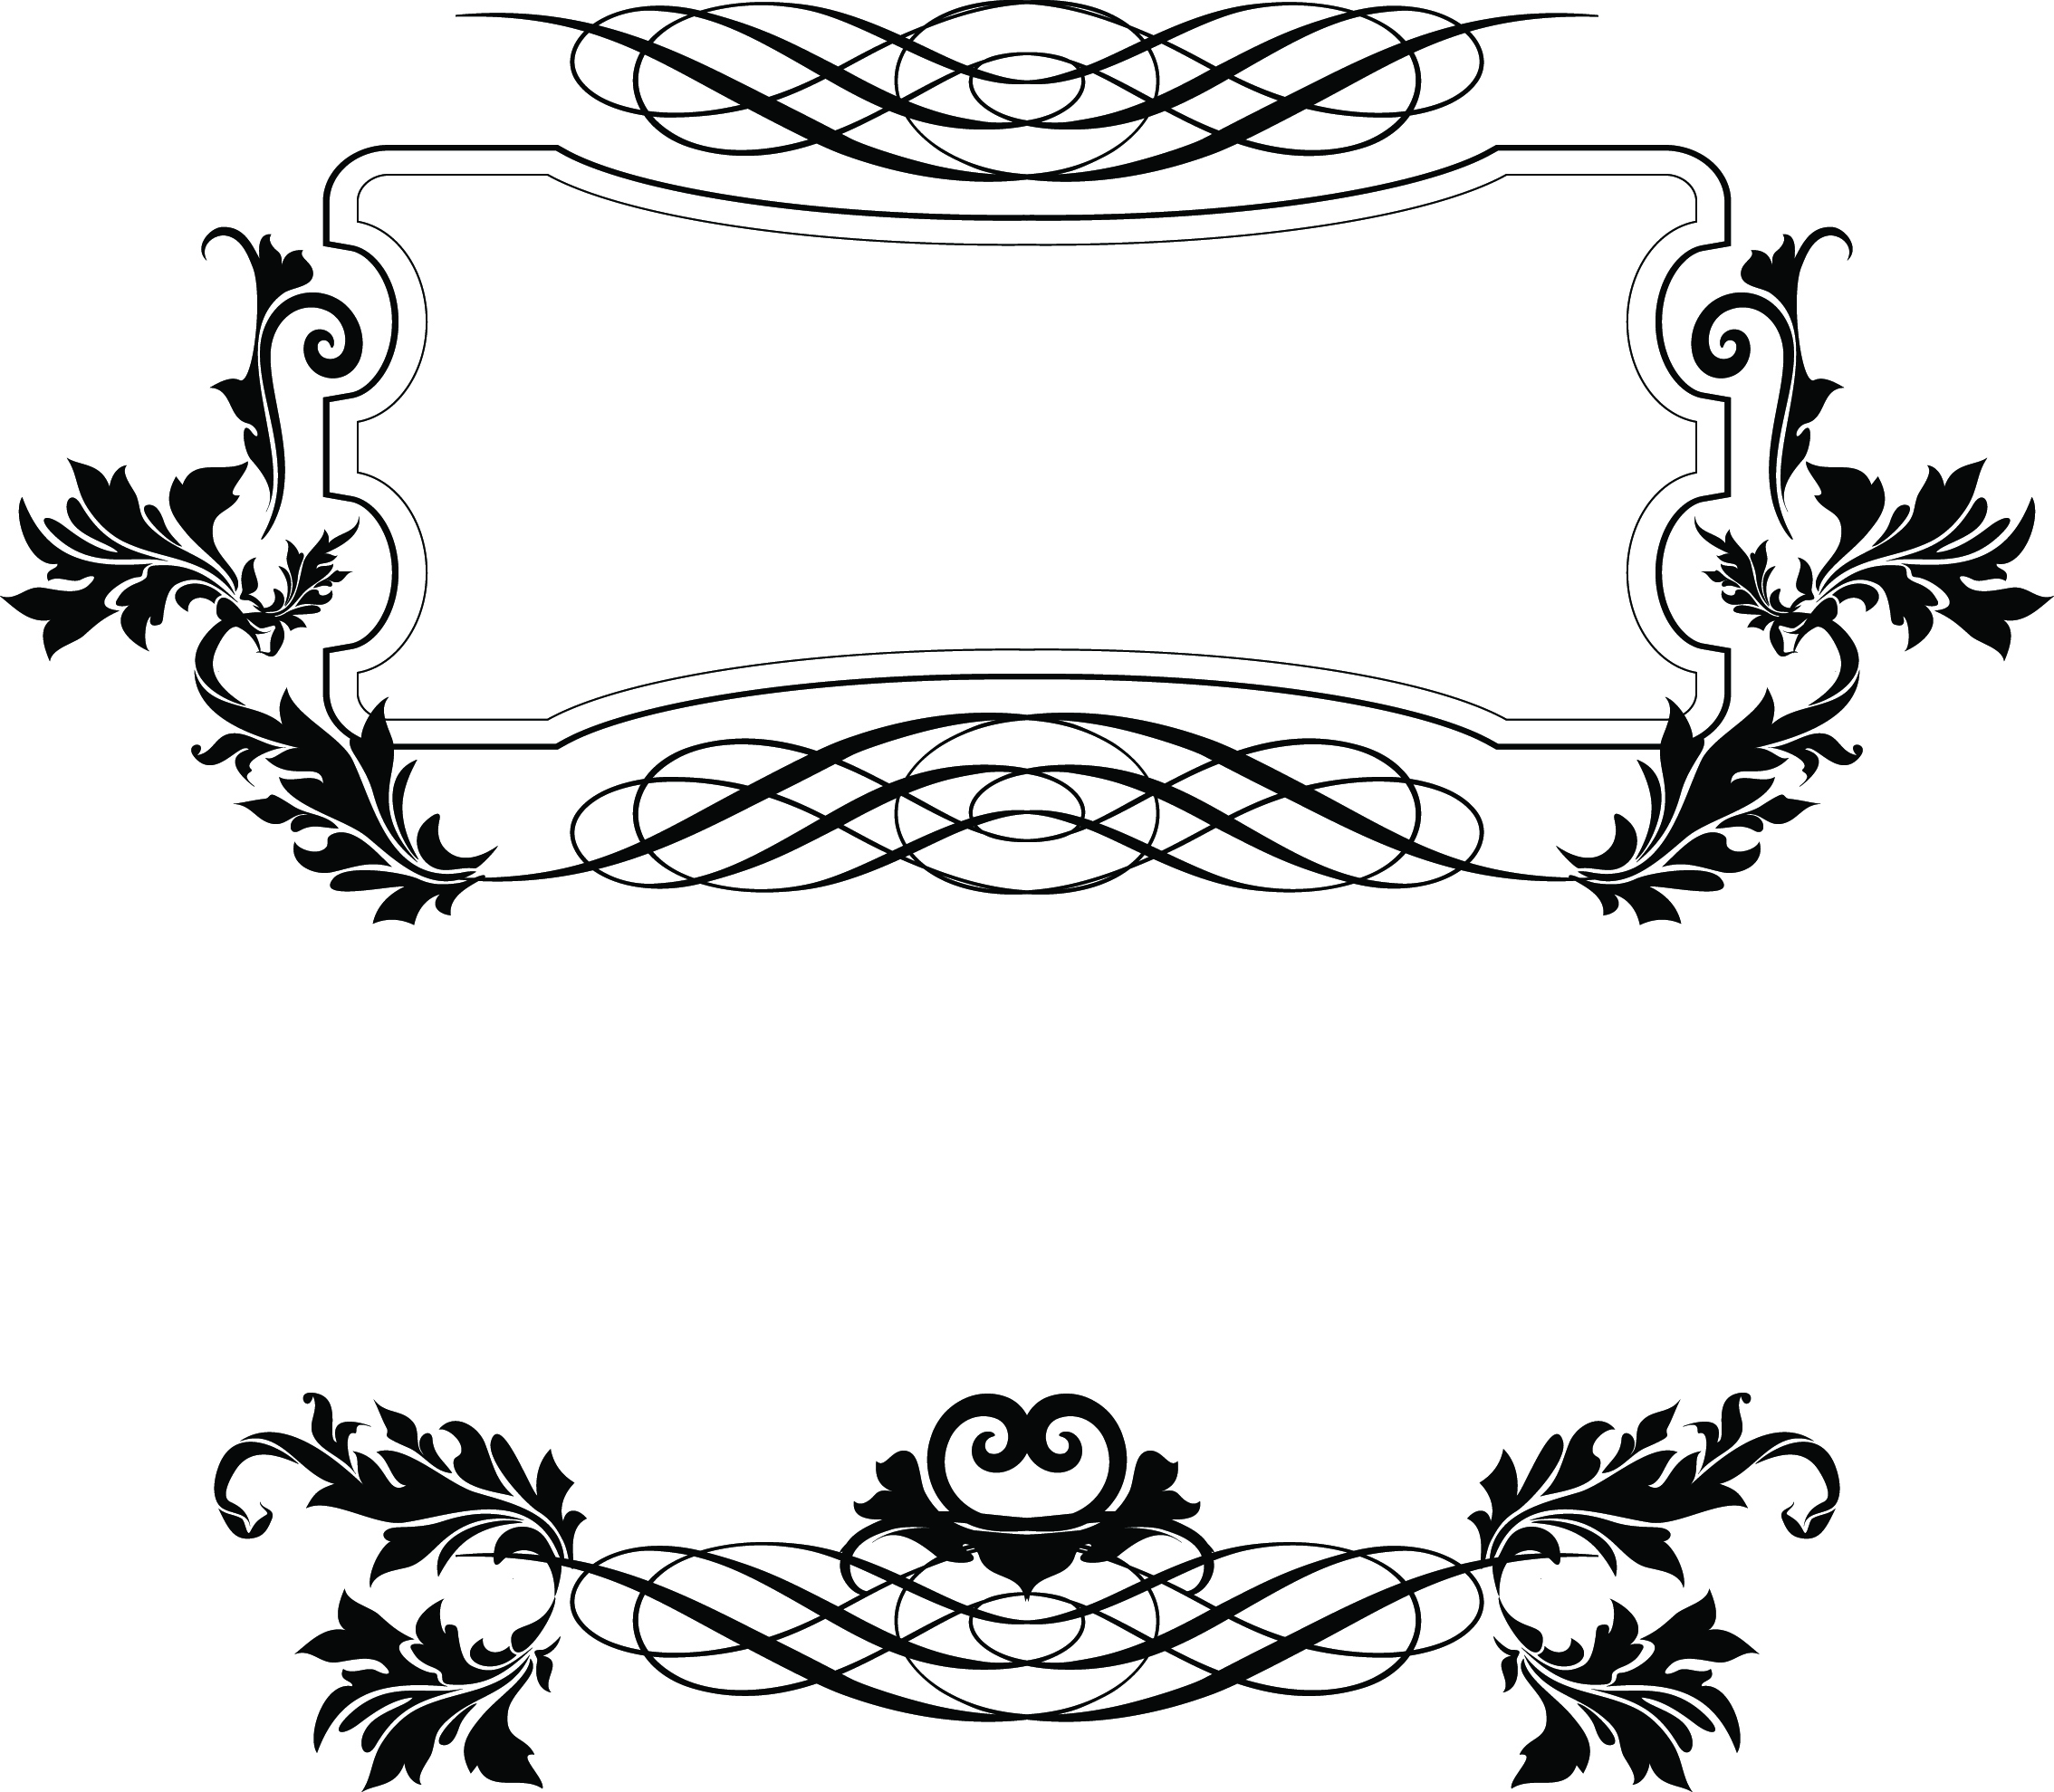 Frame Design Line Art : Fancy vector borders images free decorative